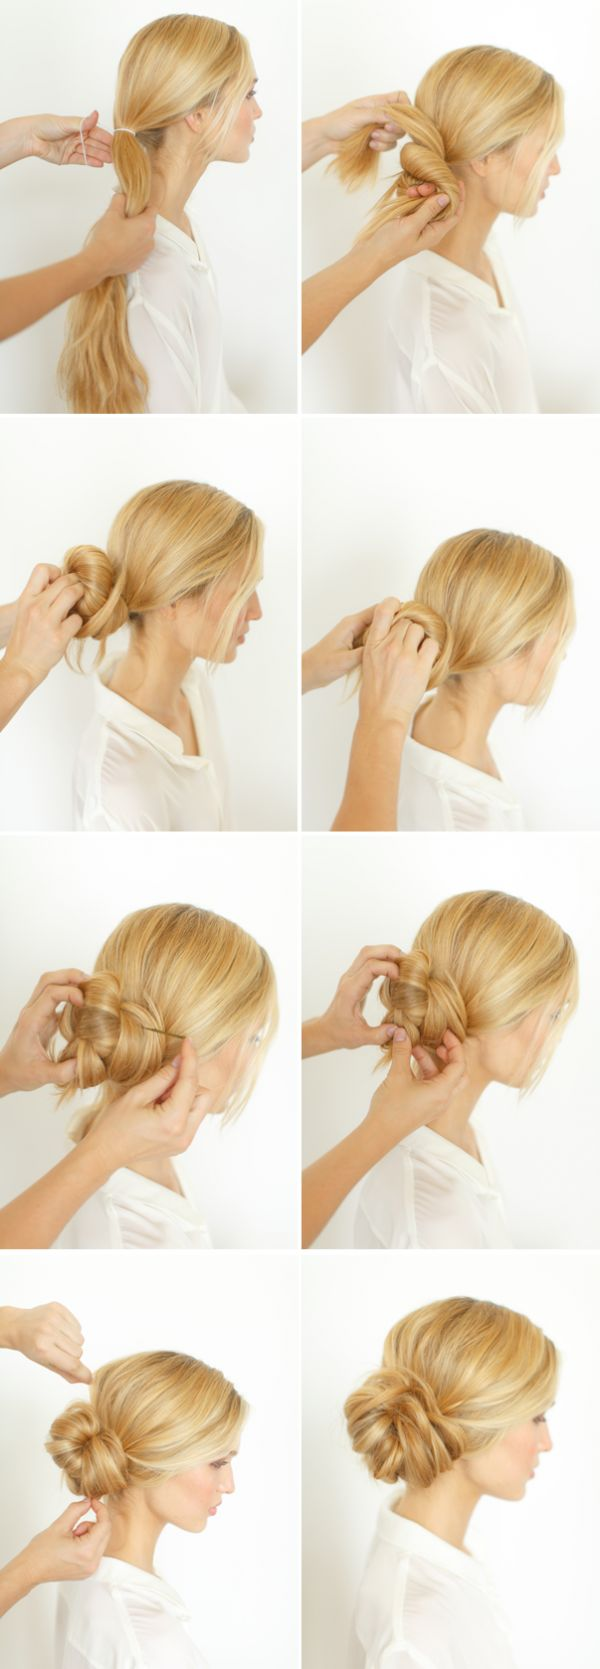 DIY Side Hairstyles - For more amazing Hair Beauty Trends visit us at http://www.brides-book.com/#!brides-book-outlets/ck9l and remember to join the VIB Club for amazing offers from all our local vendors.